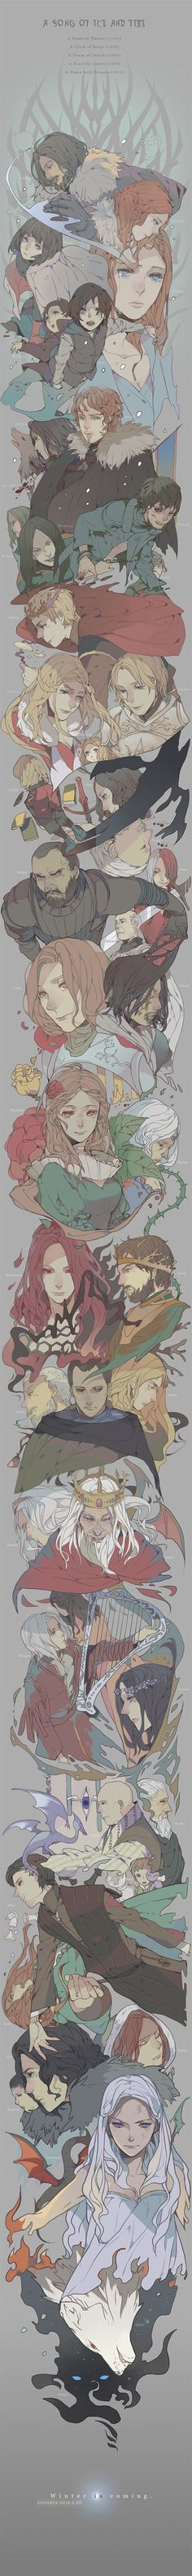 Epic GAME OF THRONES Anime